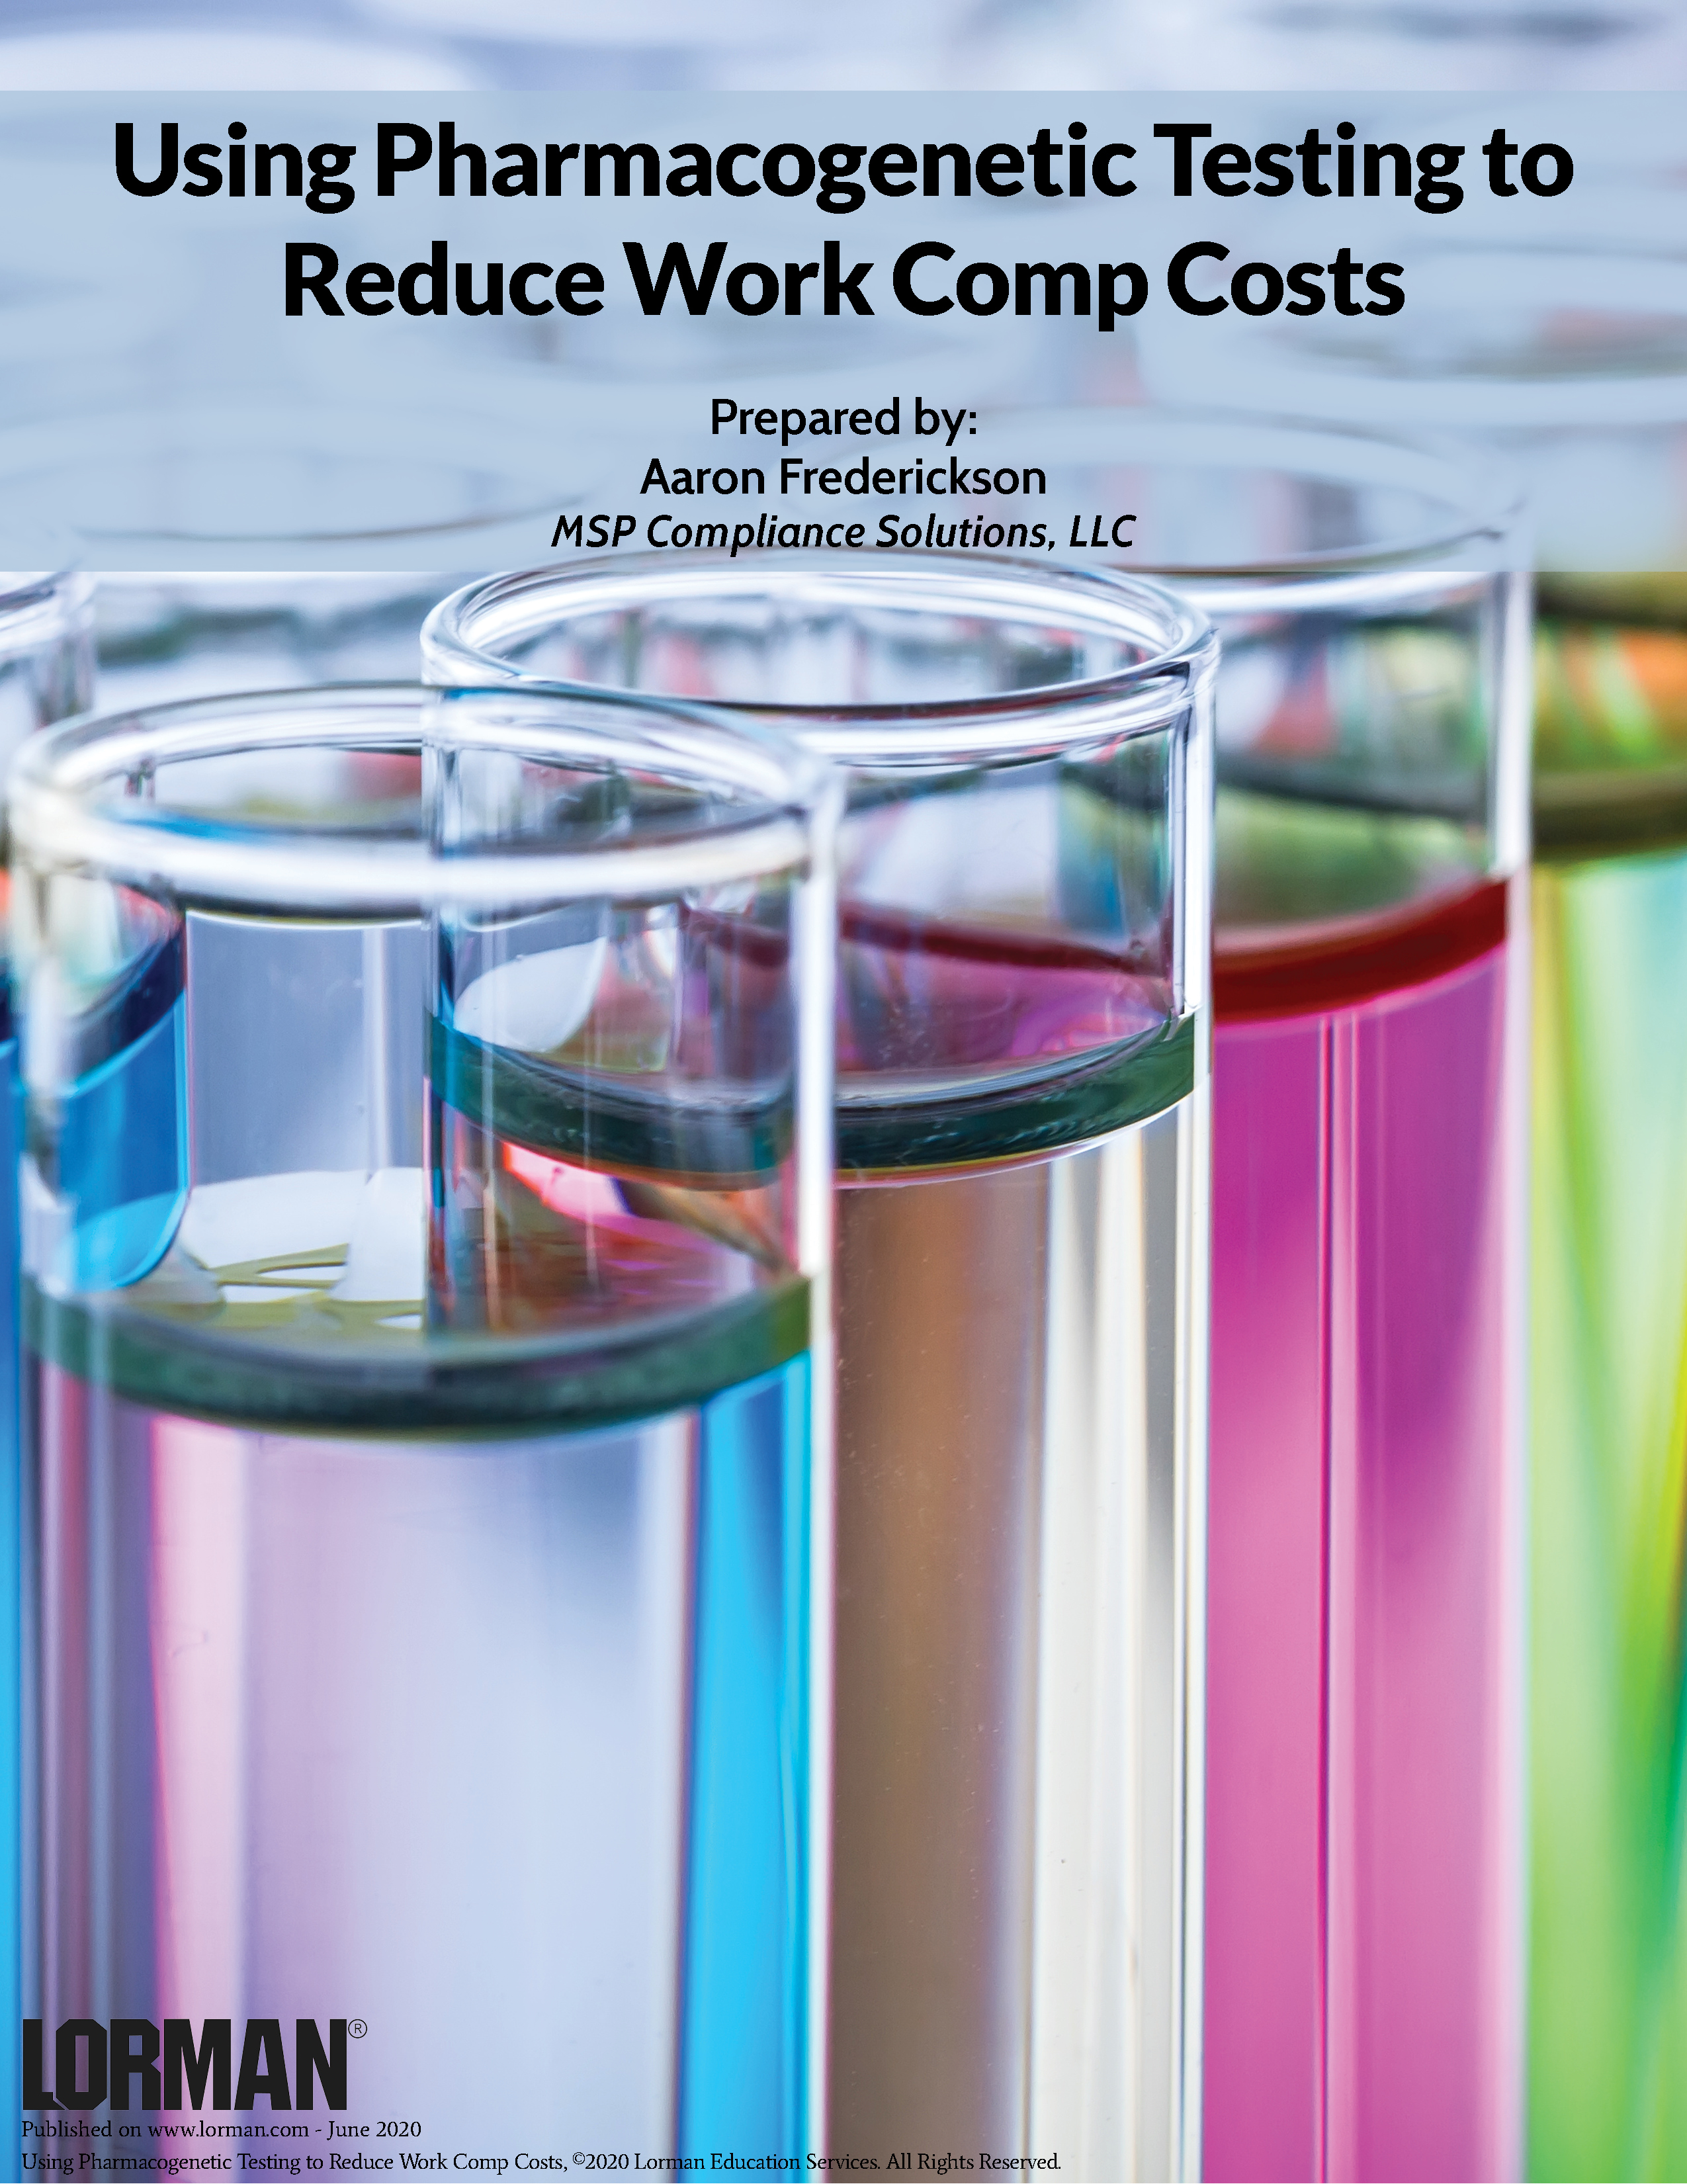 Using Pharmacogenetic Testing to Reduce Work Comp Costs